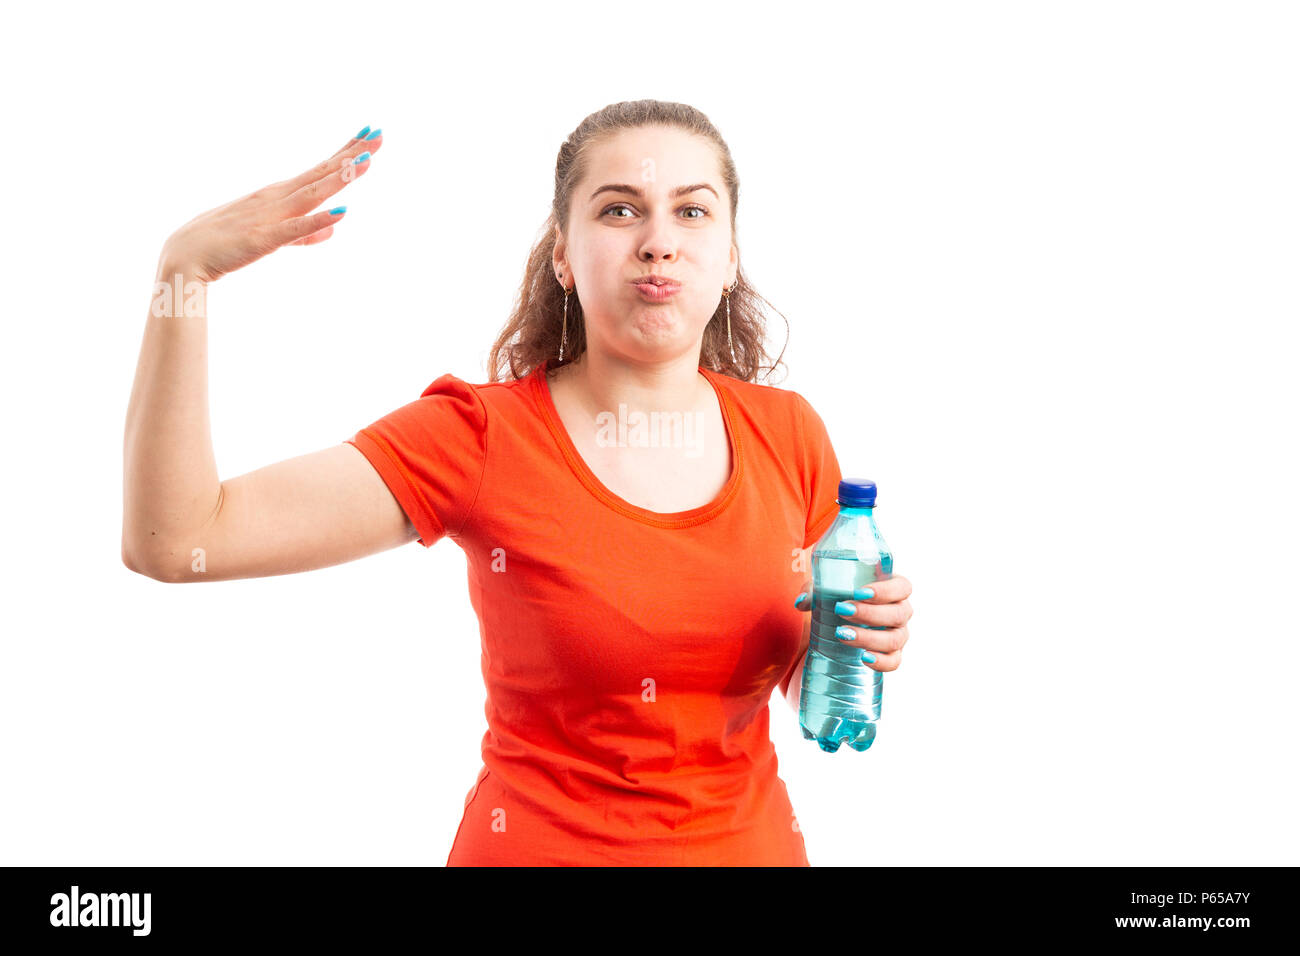 Young woman suffering health problem from high temperature heat holding bottle of water and making hot gesture as overheat concept isolated on white b - Stock Image